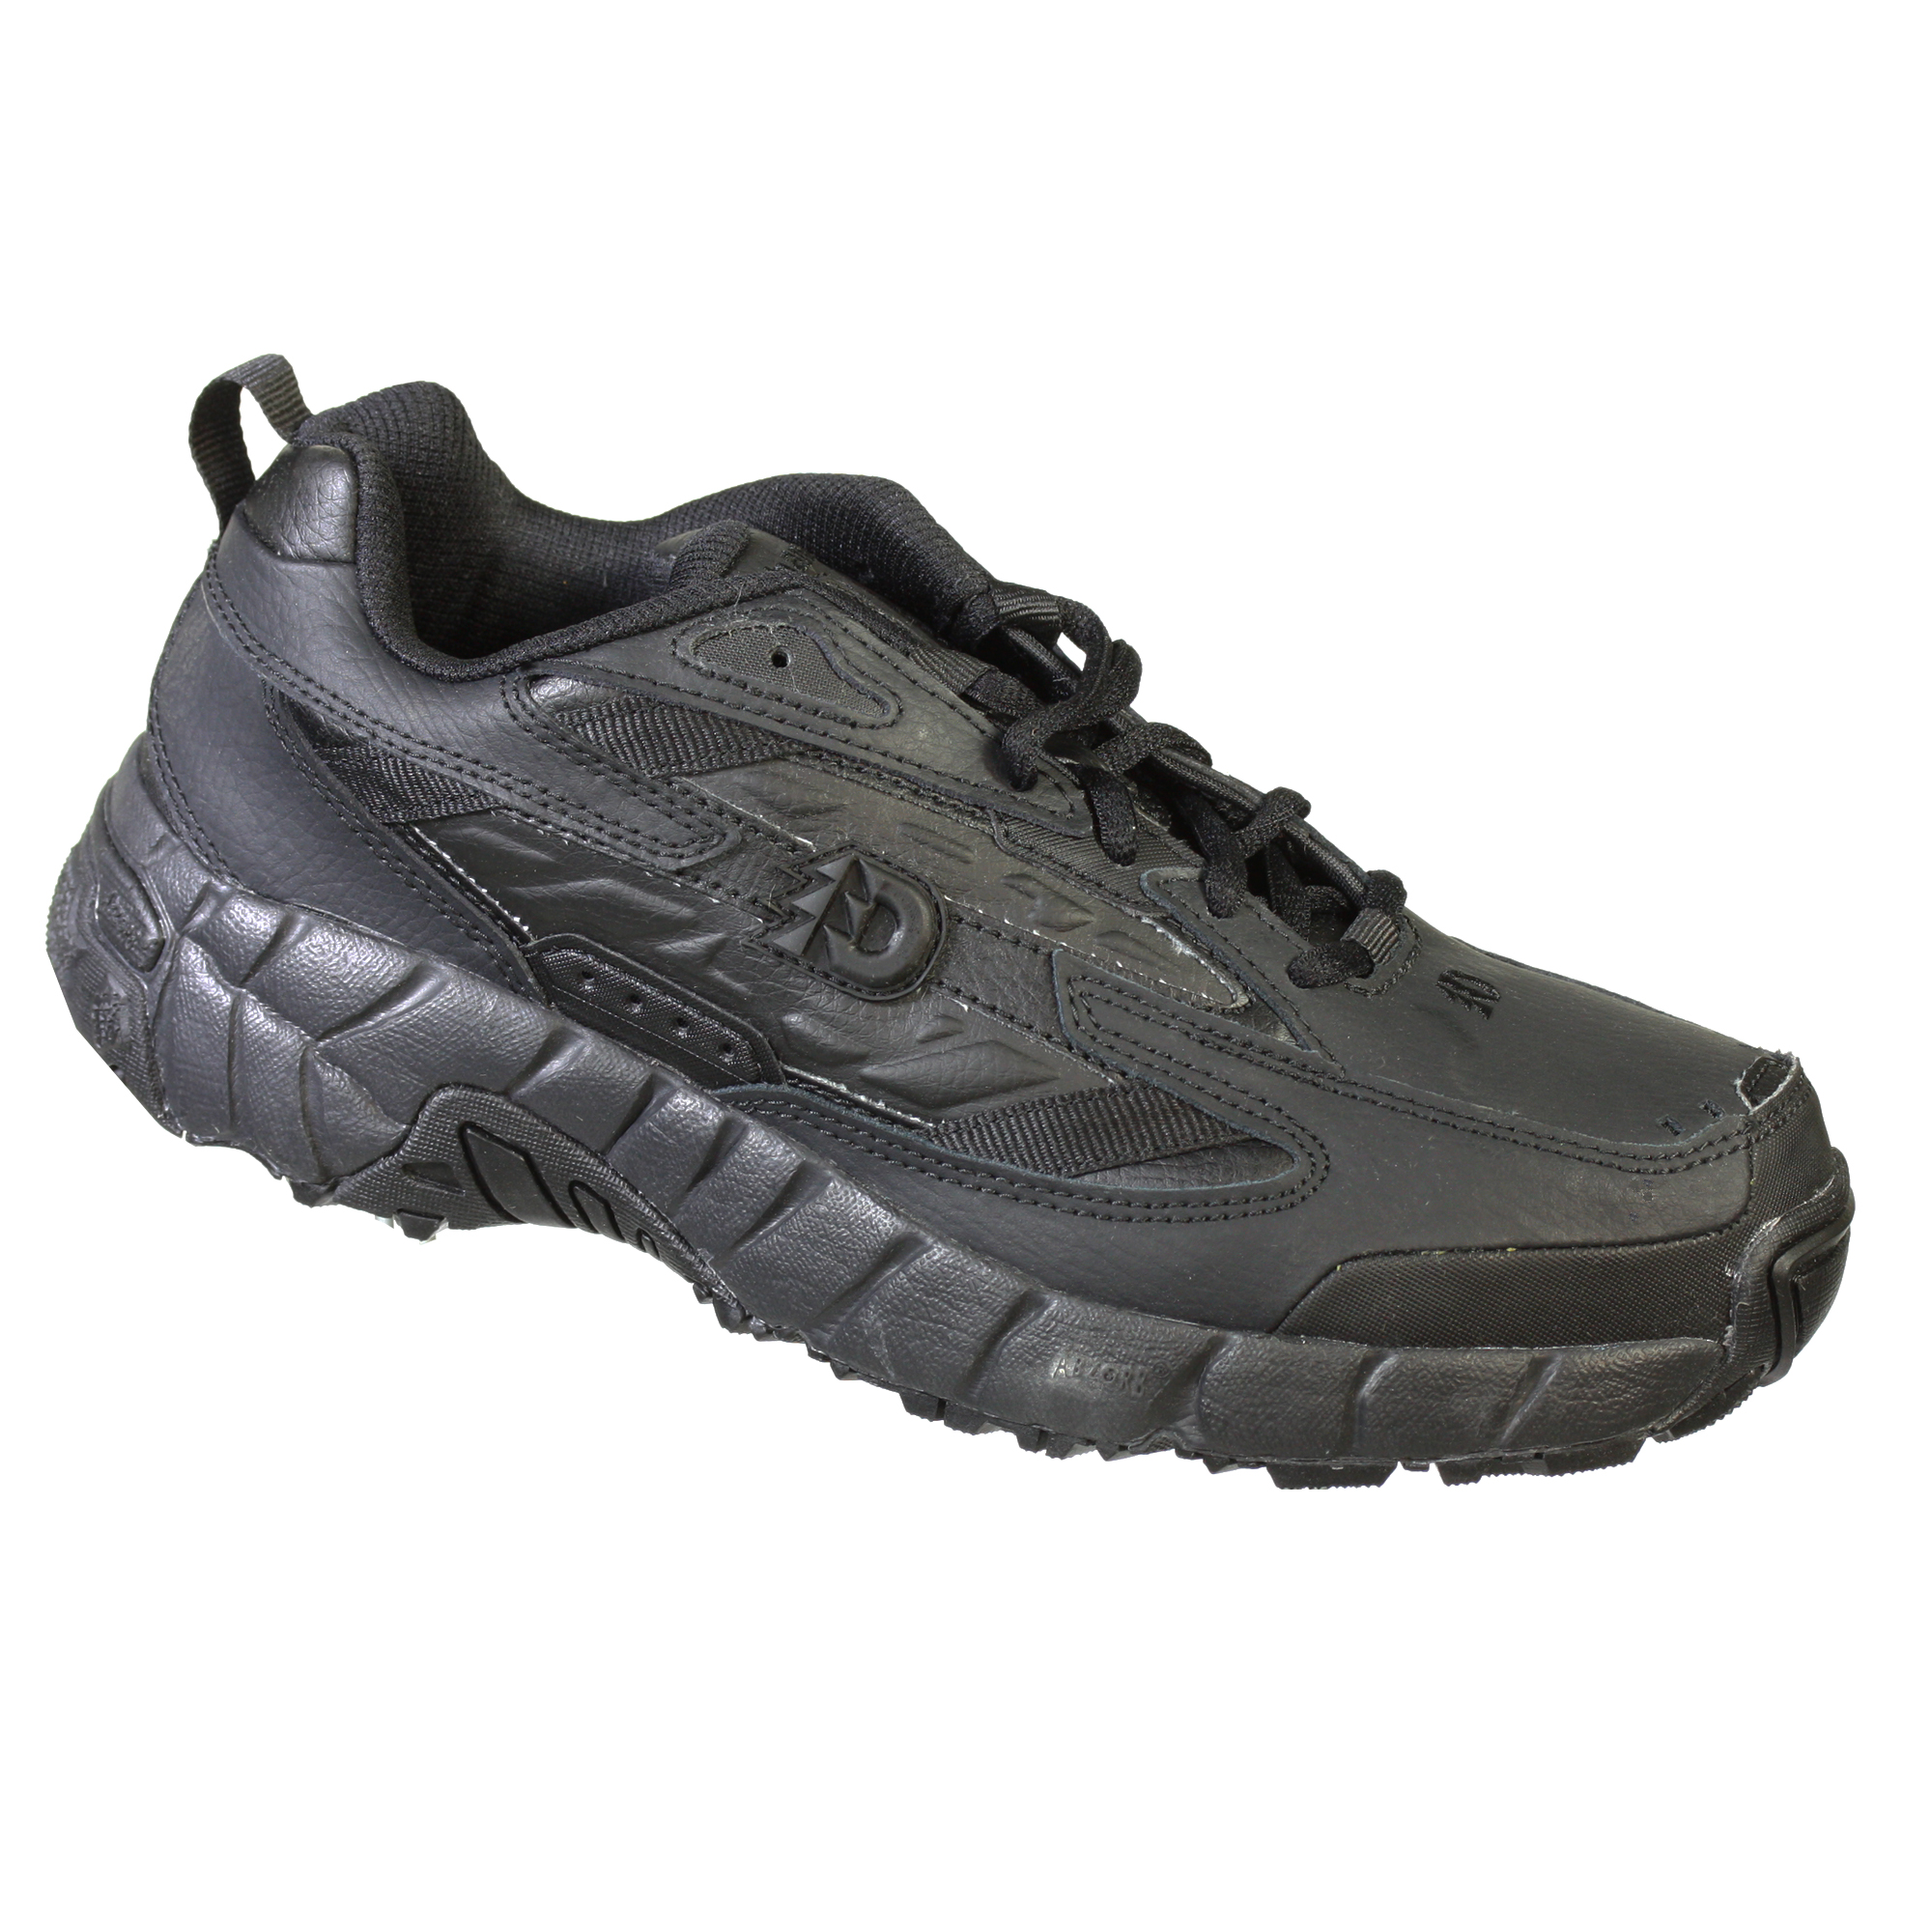 Dunham by New Balance DS664 Mens Steel Toe SDI Athletic Shoes Black 8 EE by Dunham